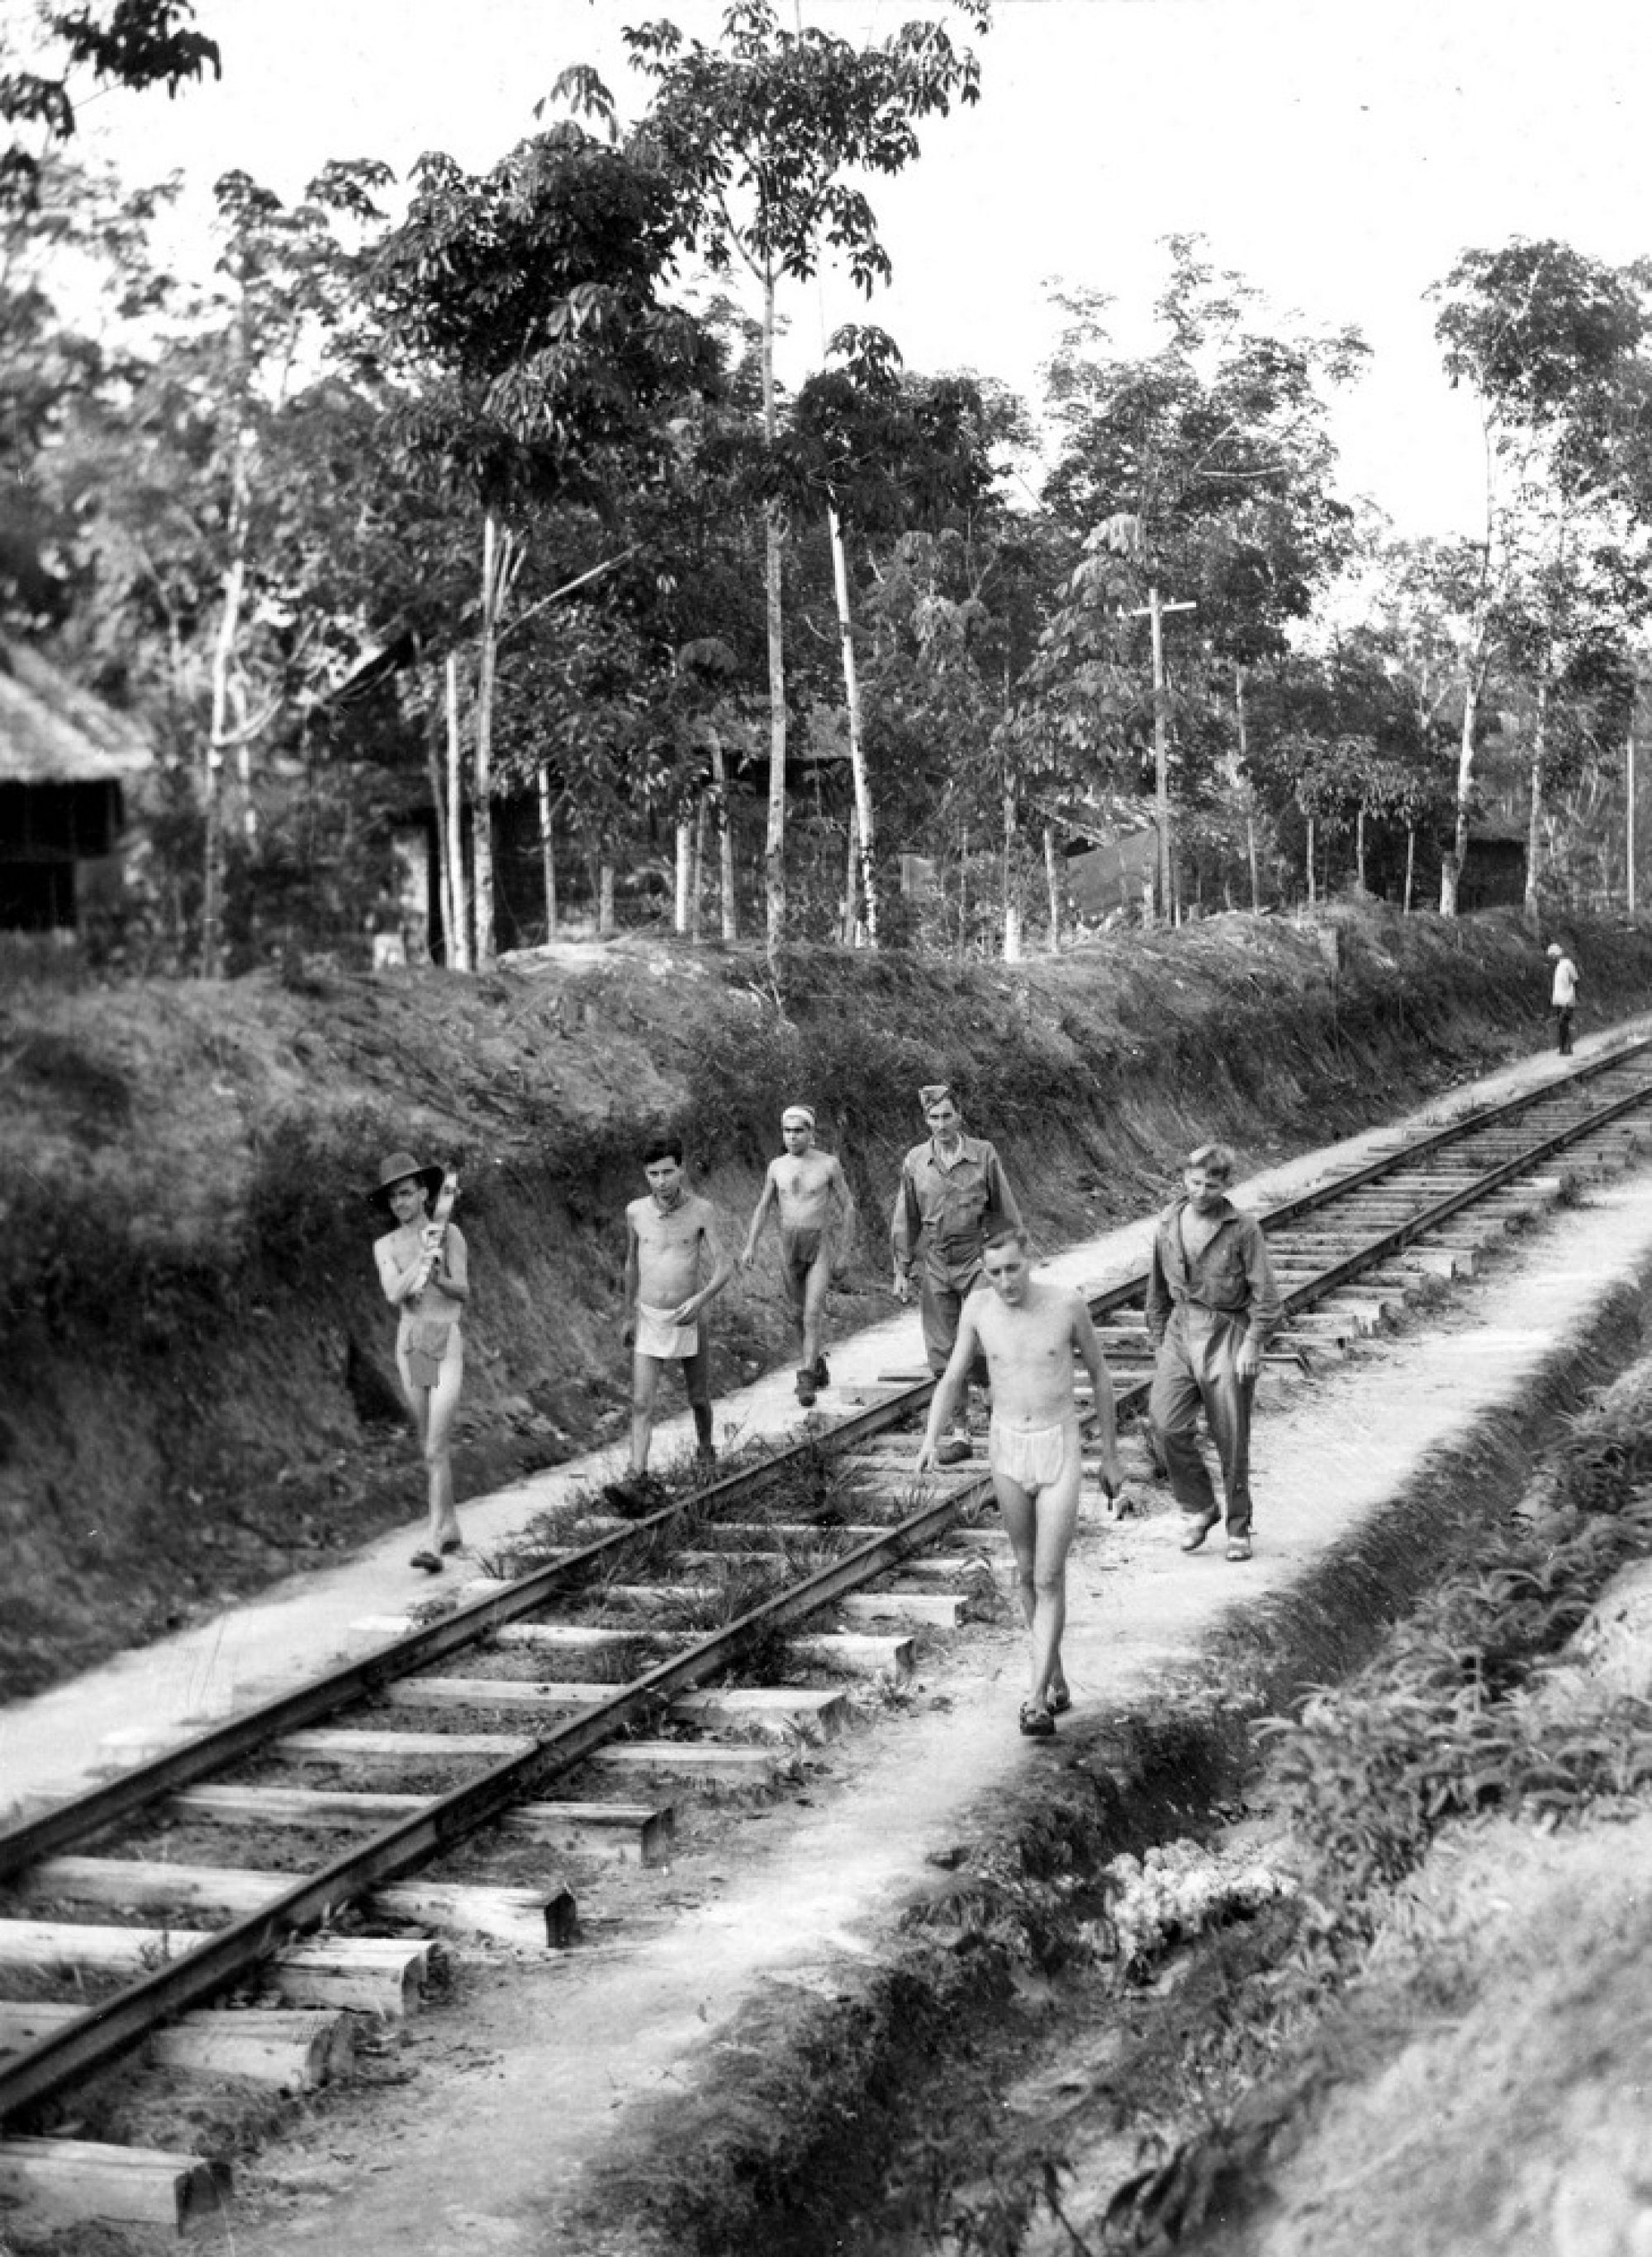 The Sumatra Railway